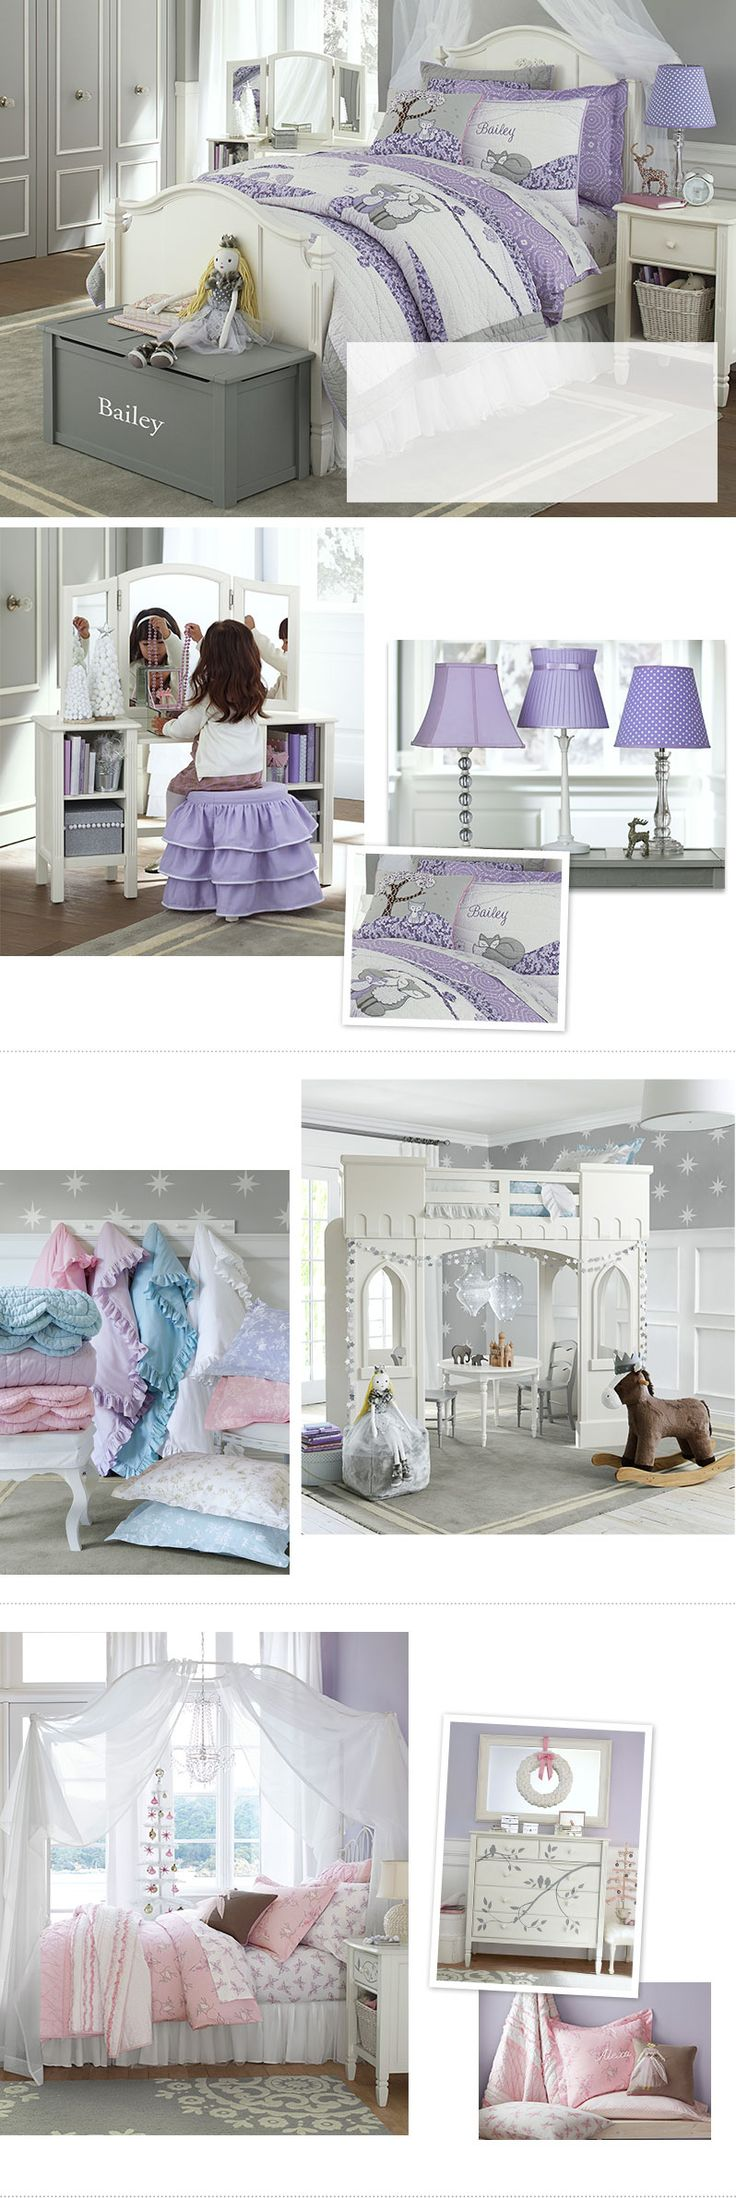 Pottery Barn Kids Bedroom Furniture 17 Best Images About Kidspace Decor On Pinterest Blue Girls